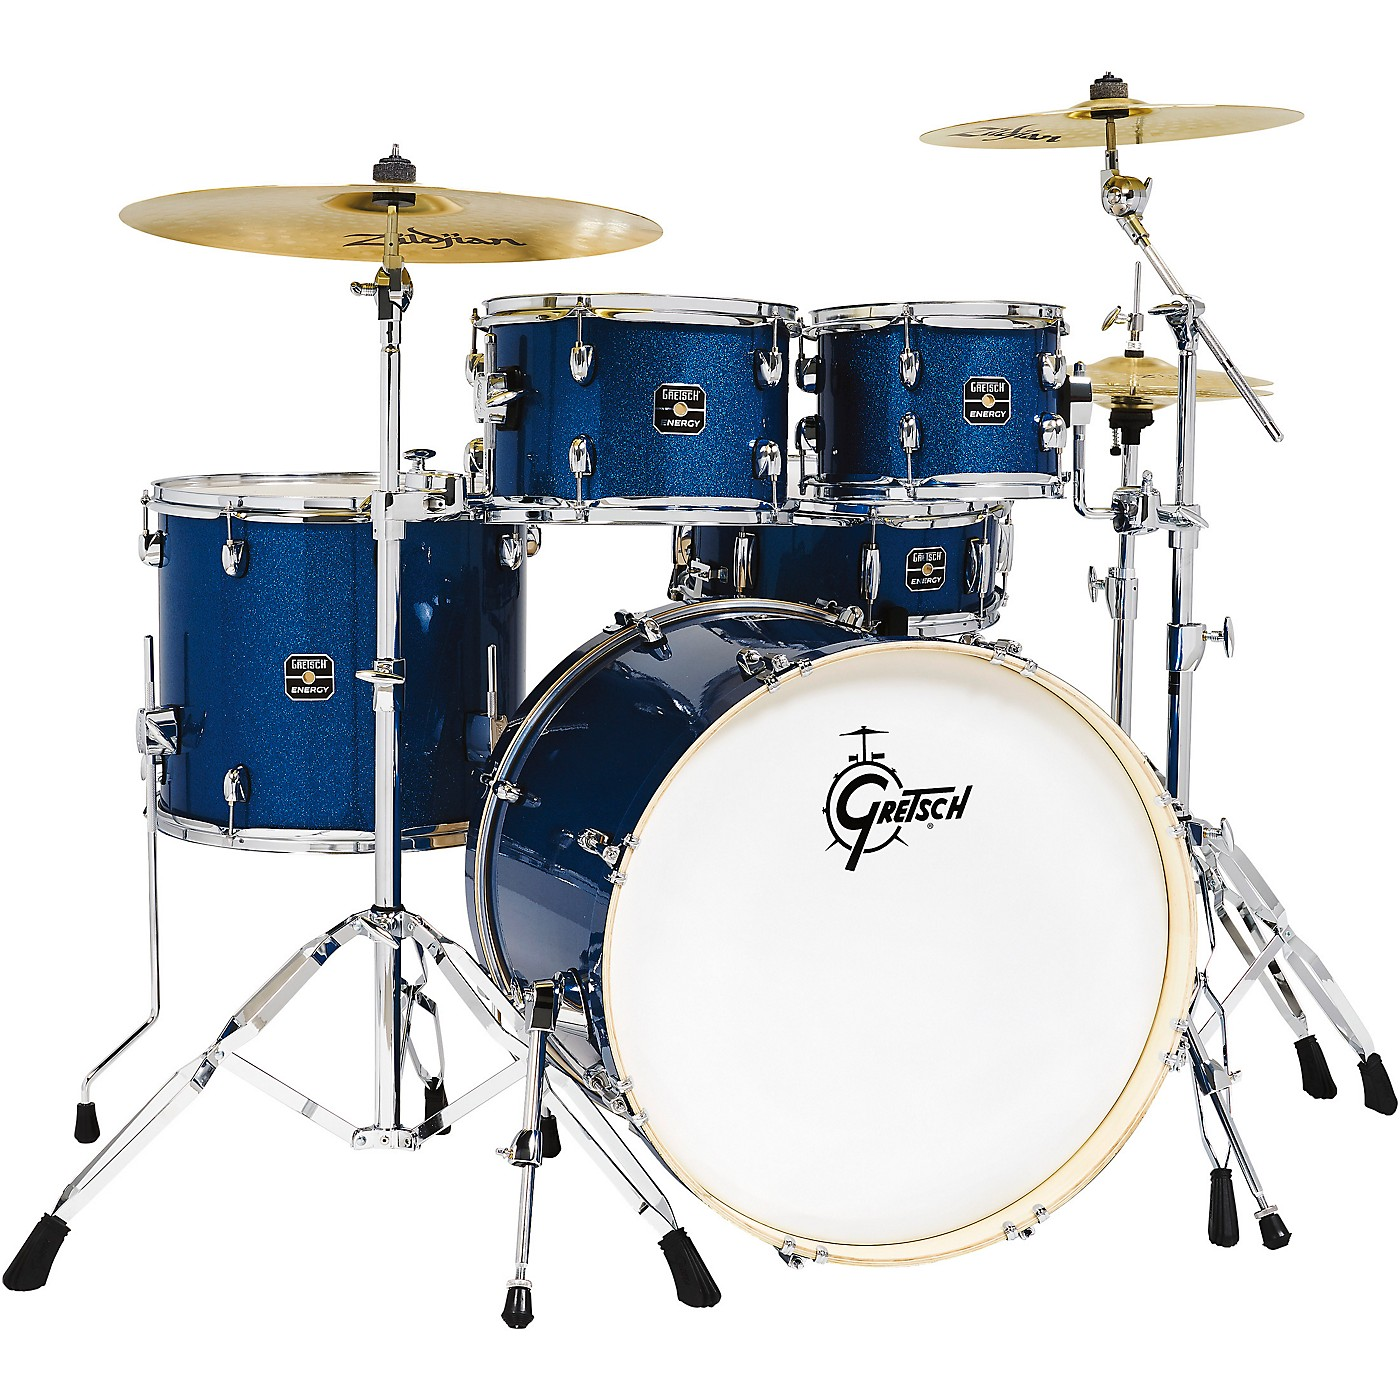 Gretsch Drums Energy 5-Piece Drum Set With Hardware and Zildjian Cymbals thumbnail